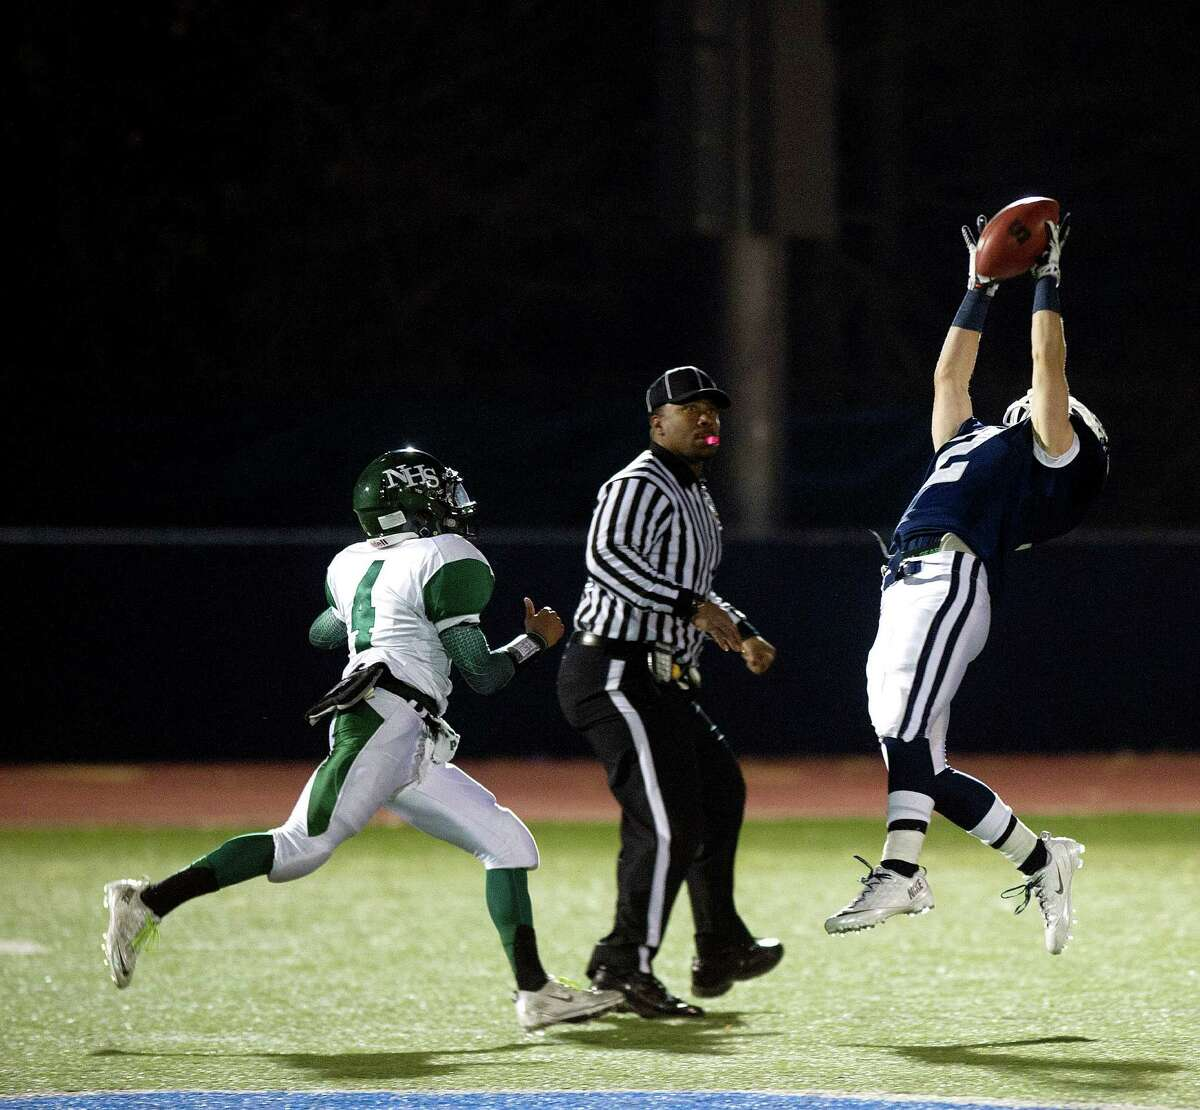 Staples' Will Johnson makes a catch during Saturday's football game at Staples High School in Westport, Conn., on November 15, 2013.